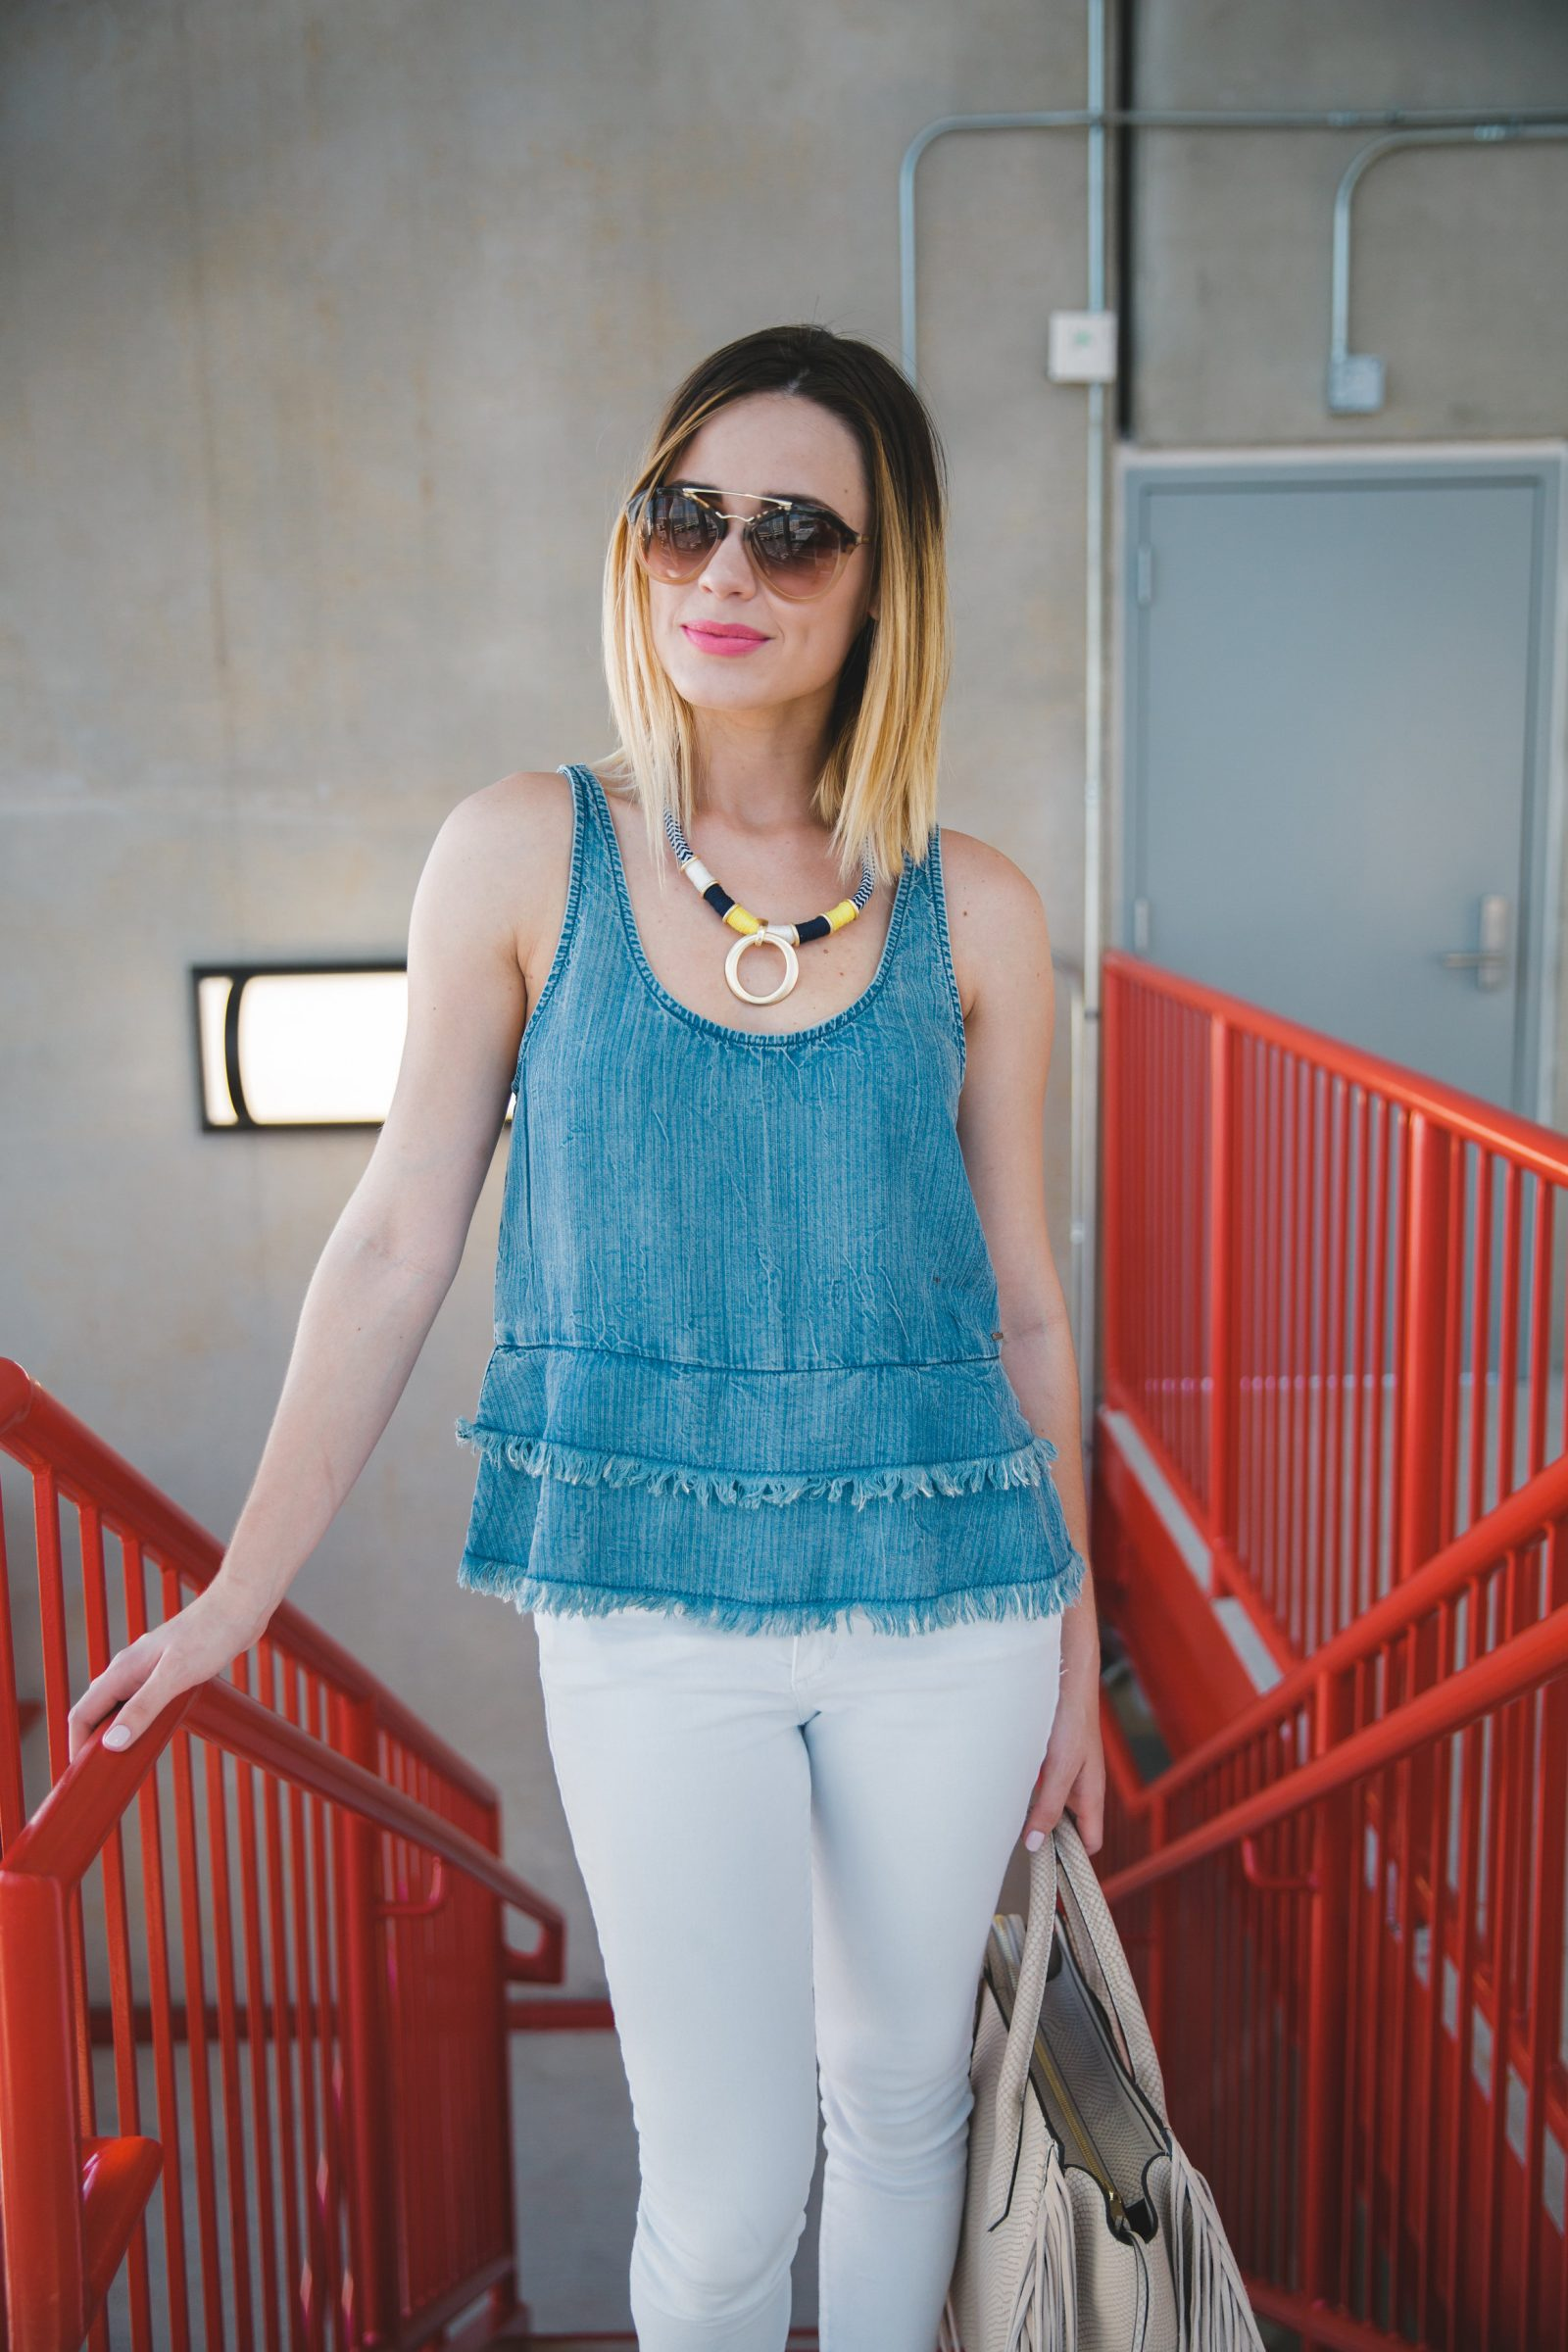 Houston Fashion blogger Uptown with Elly Brown wears a denim on denim outfit for a Casual Spring Look.